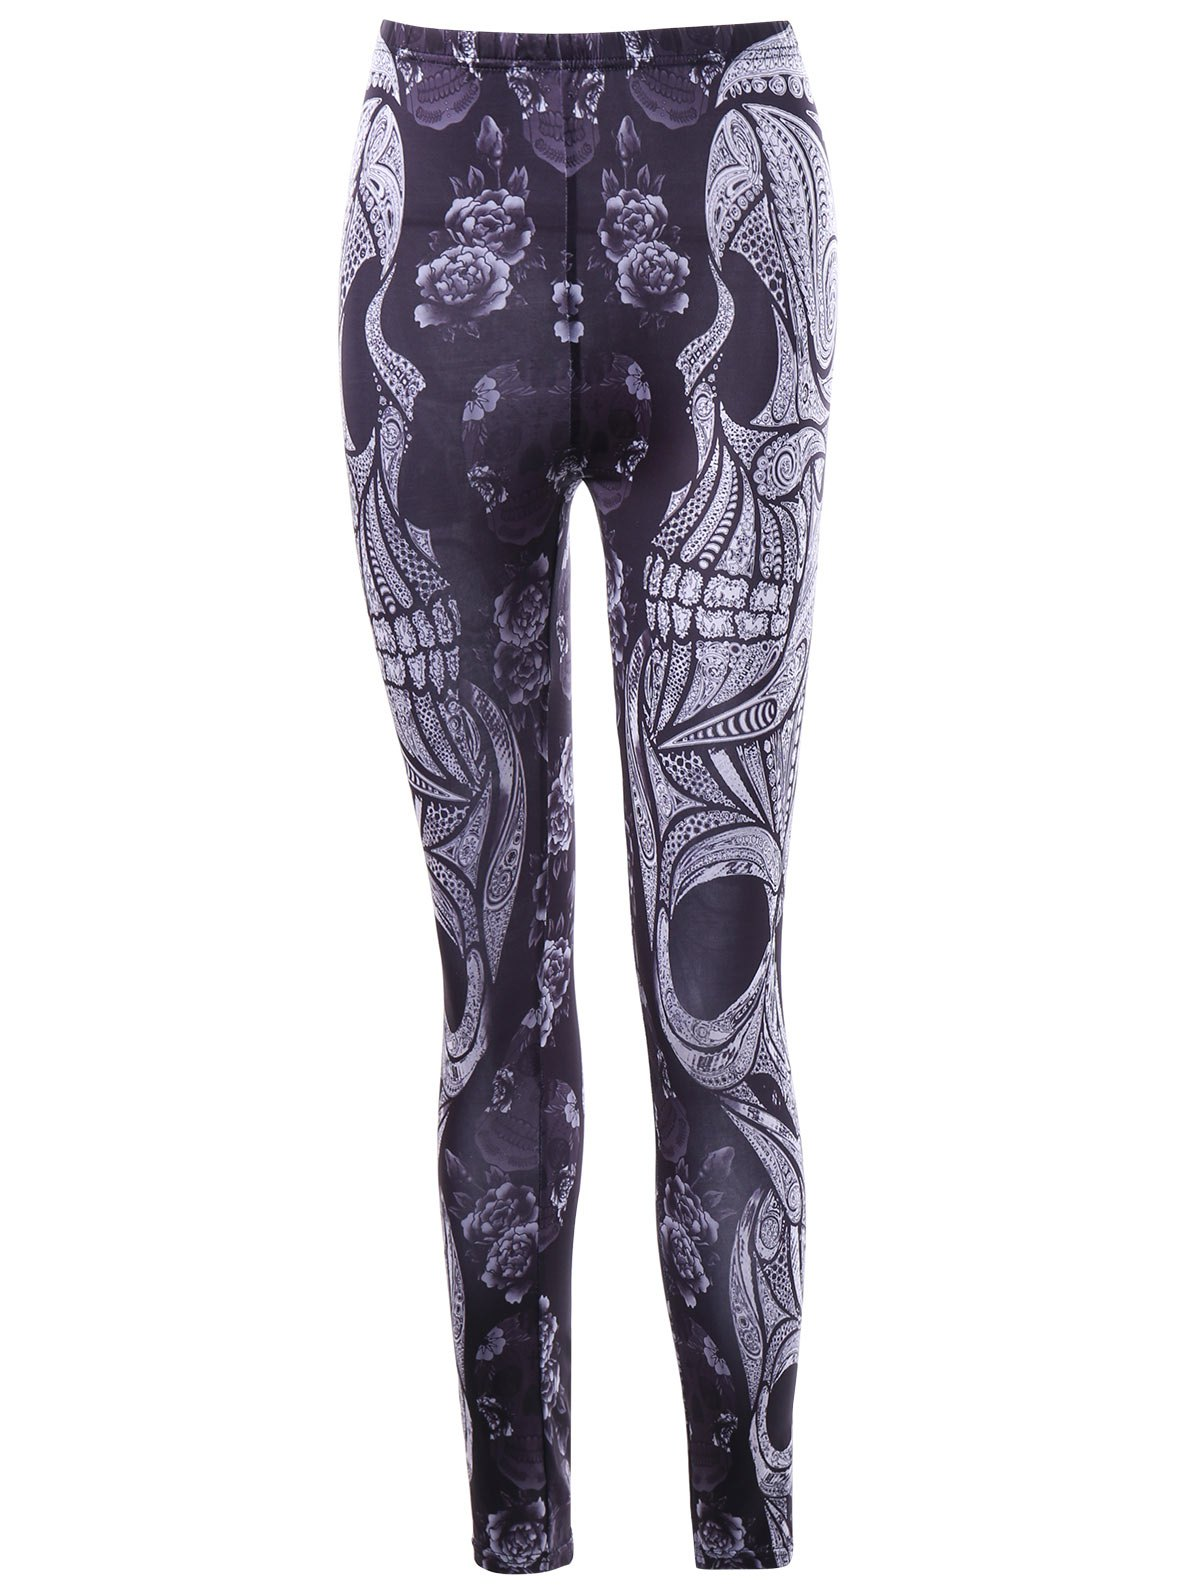 Halloween Flower and Skull Printed LeggingsWOMEN<br><br>Size: 2XL; Color: BLACK; Style: Gothic; Material: Polyester,Spandex; Waist Type: Mid; Pattern Type: Floral,Skull; Weight: 0.1740kg; Package Contents: 1 x Leggings;